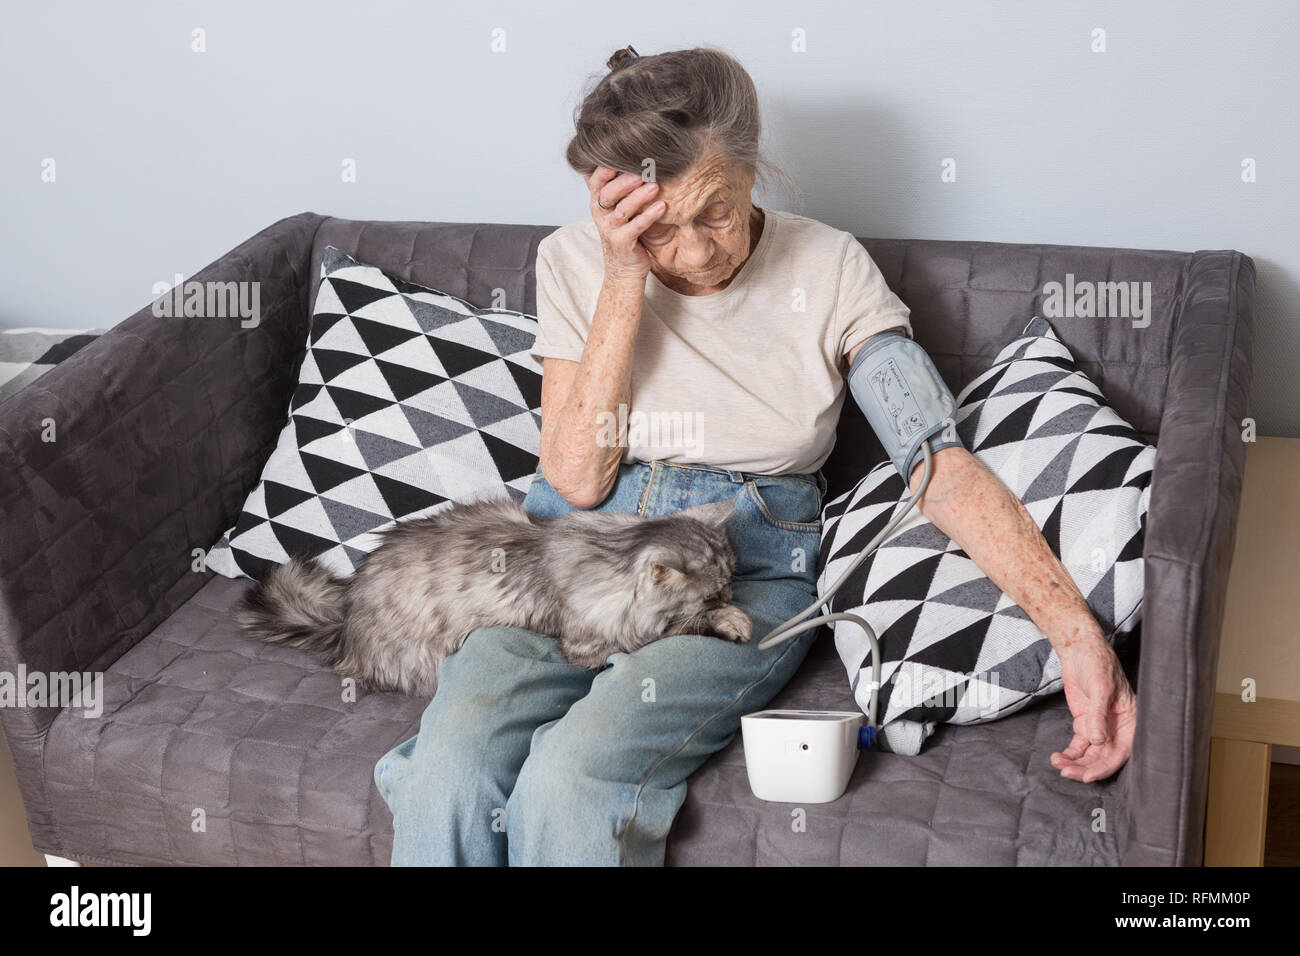 The topic is very old person and health problems. A senior Caucasian woman, 90 years old, with wrinkles and gray hair, sits home on sofa with pet cat  - Stock Image